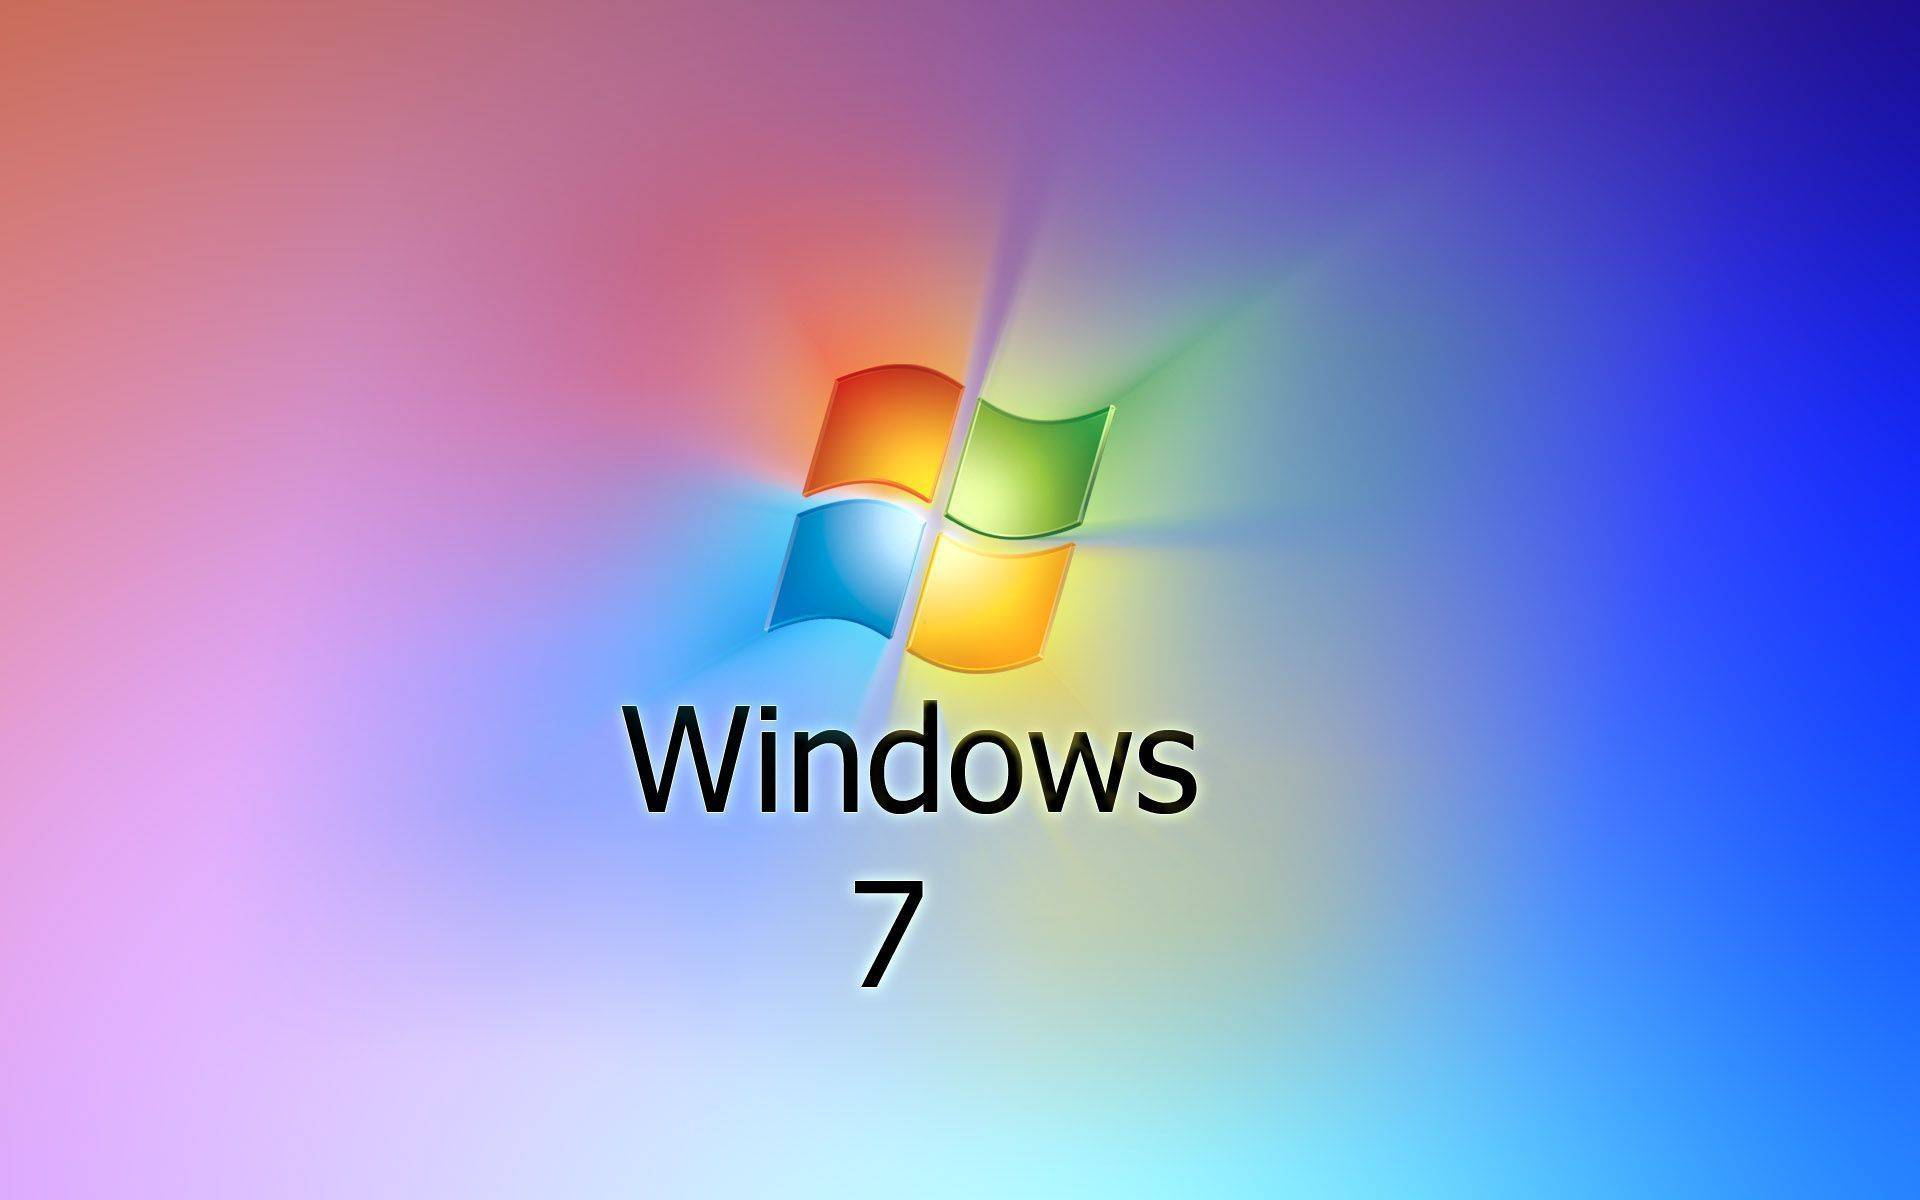 Windows 7 Pc Wallpaper Free Download